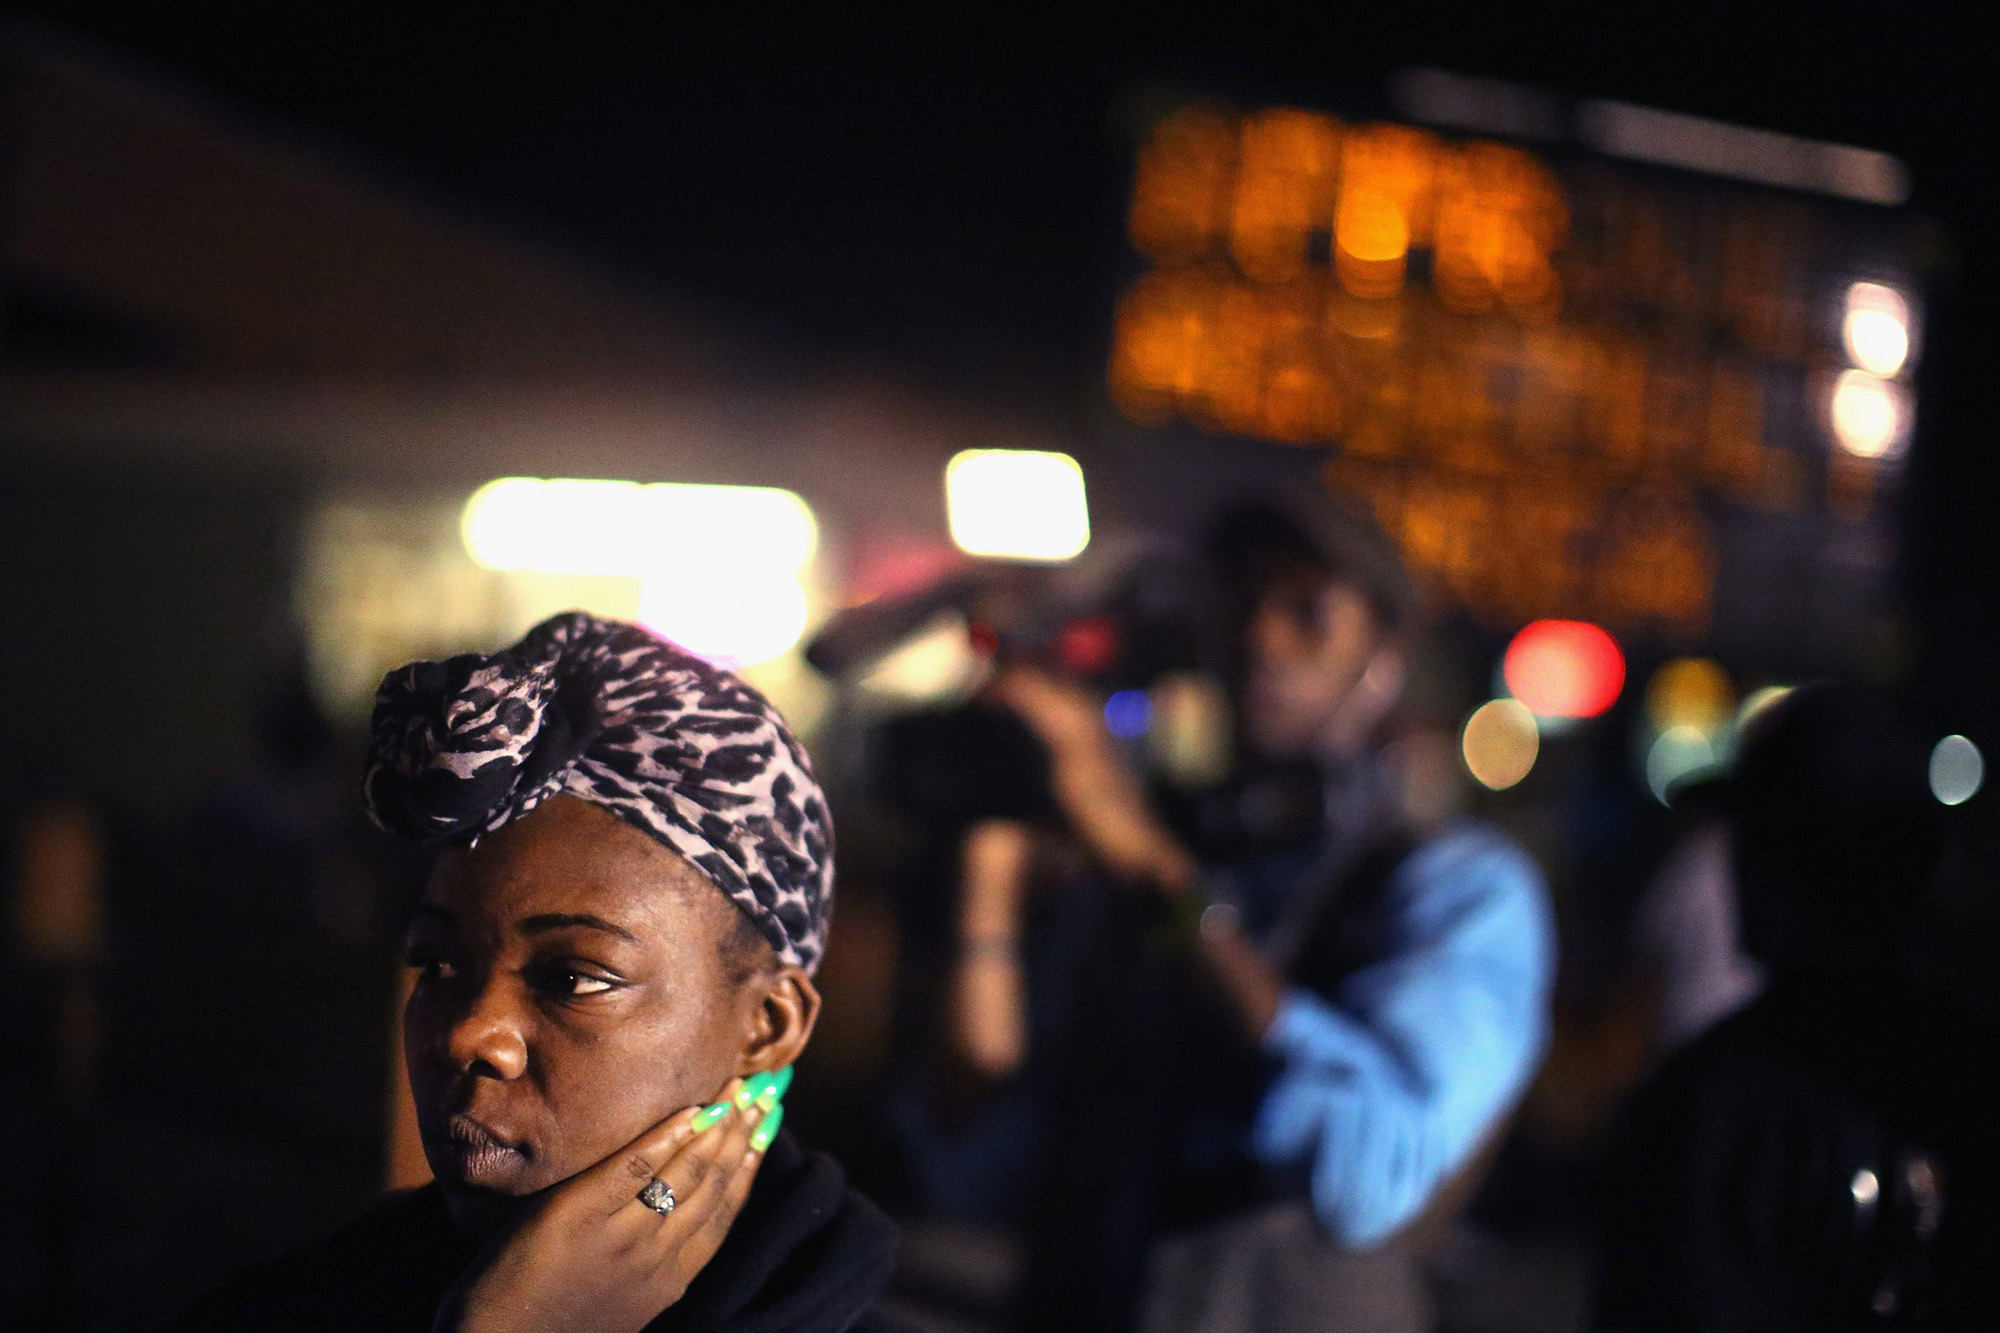 Demonstrators protest the killing of teenager Michael Brown on Aug. 20, 2014 in Ferguson, Mo.